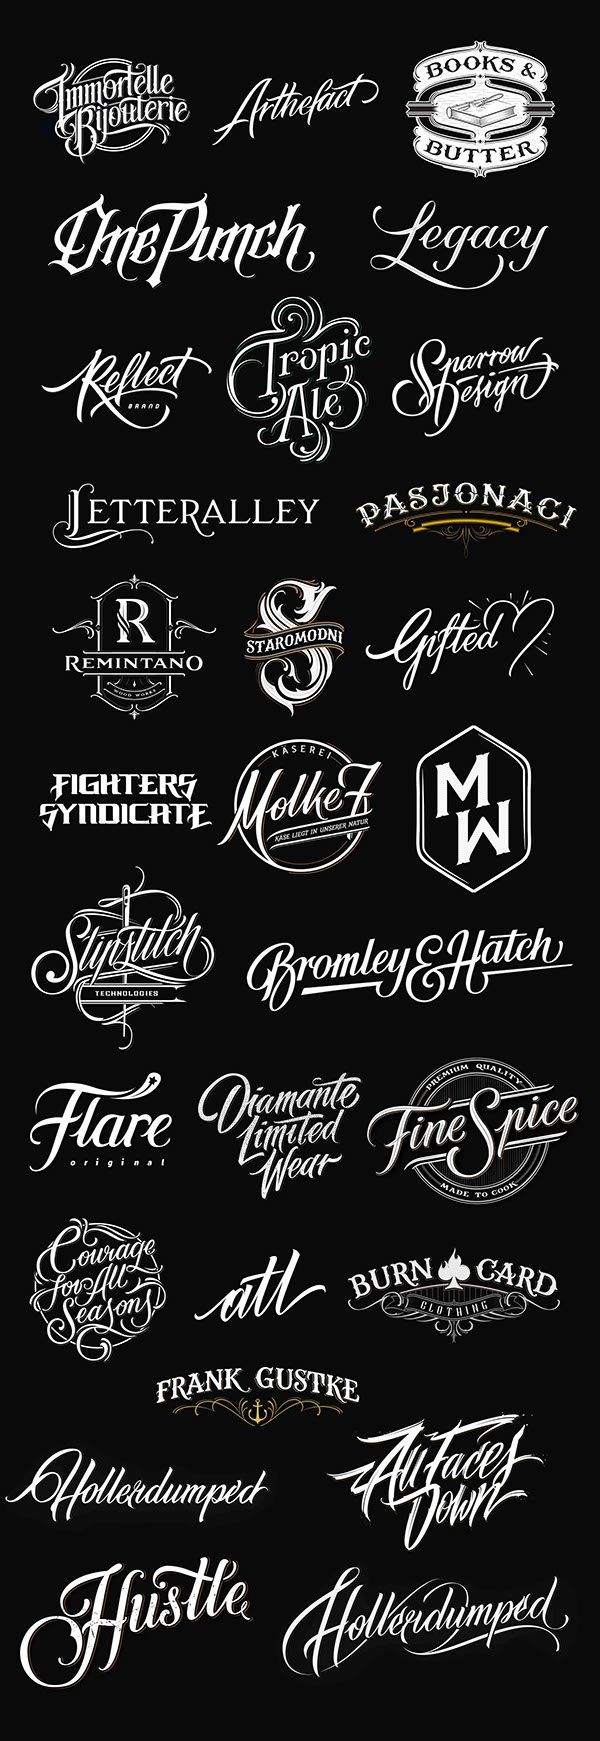 https://www.behance.net/gallery/17921053/Handlettered-Logotypes-3